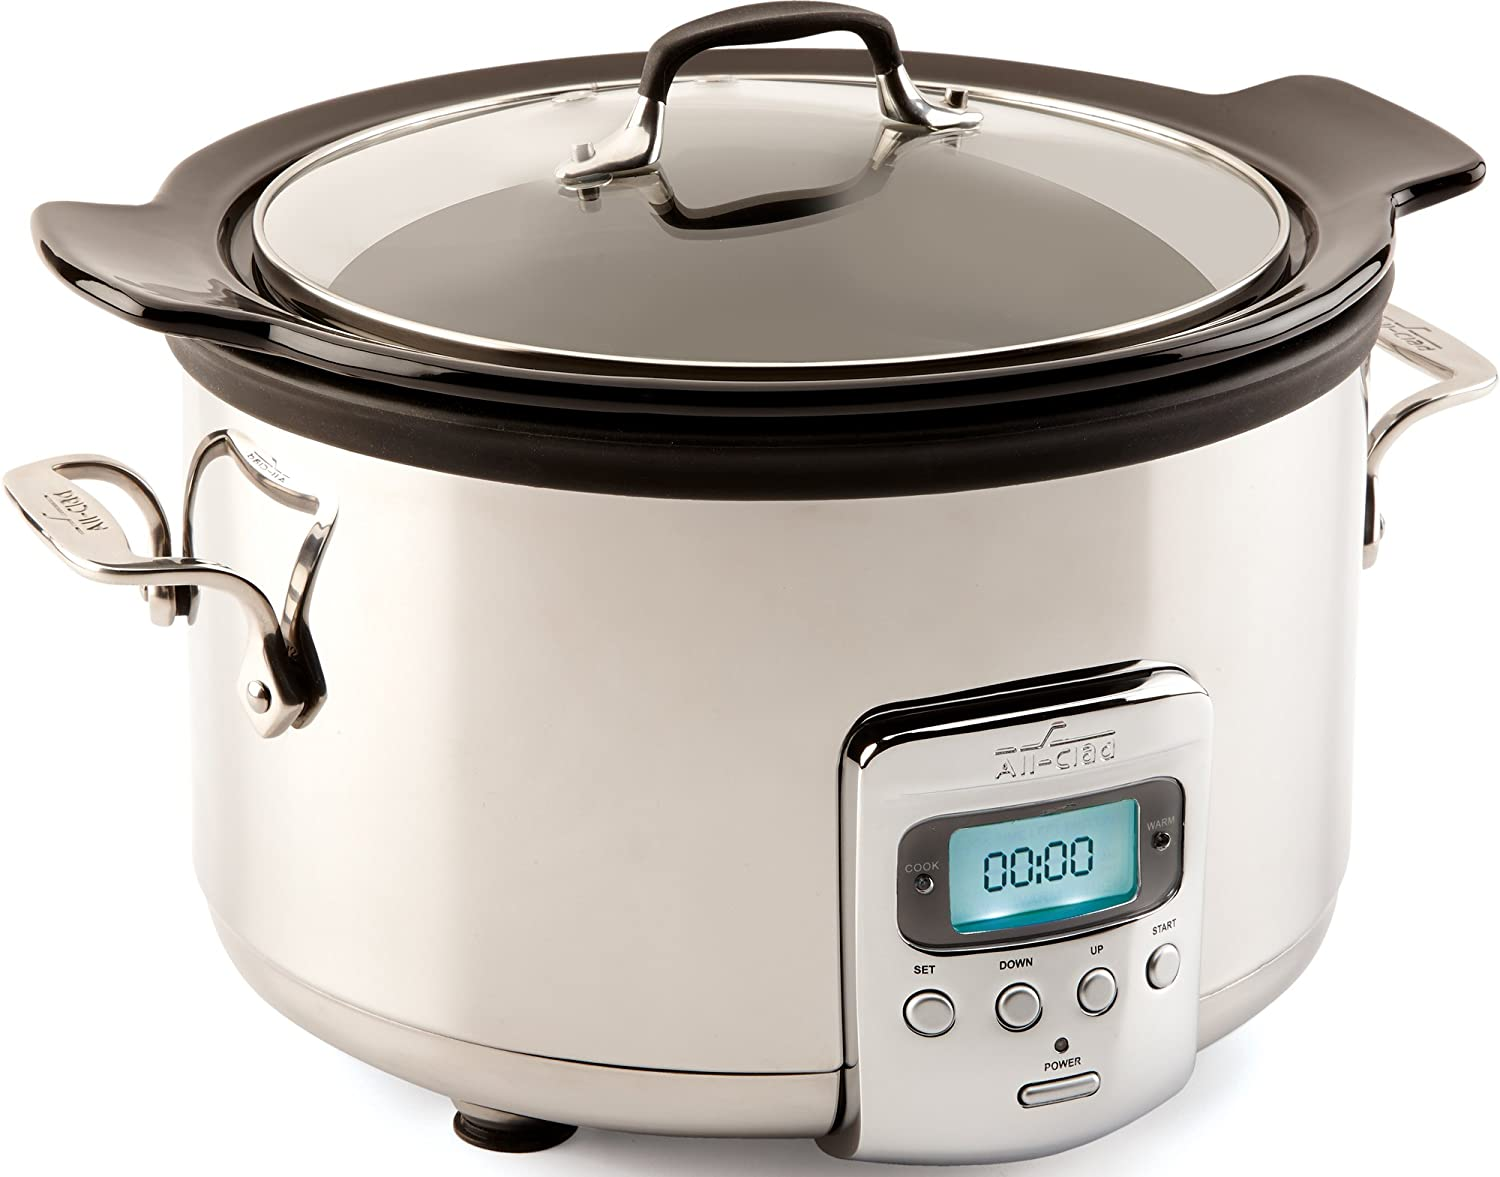 All-Clad SD710851 Slow Cooker with Black Ceramic Insert and Glass Lid, 4-Quart, Silver